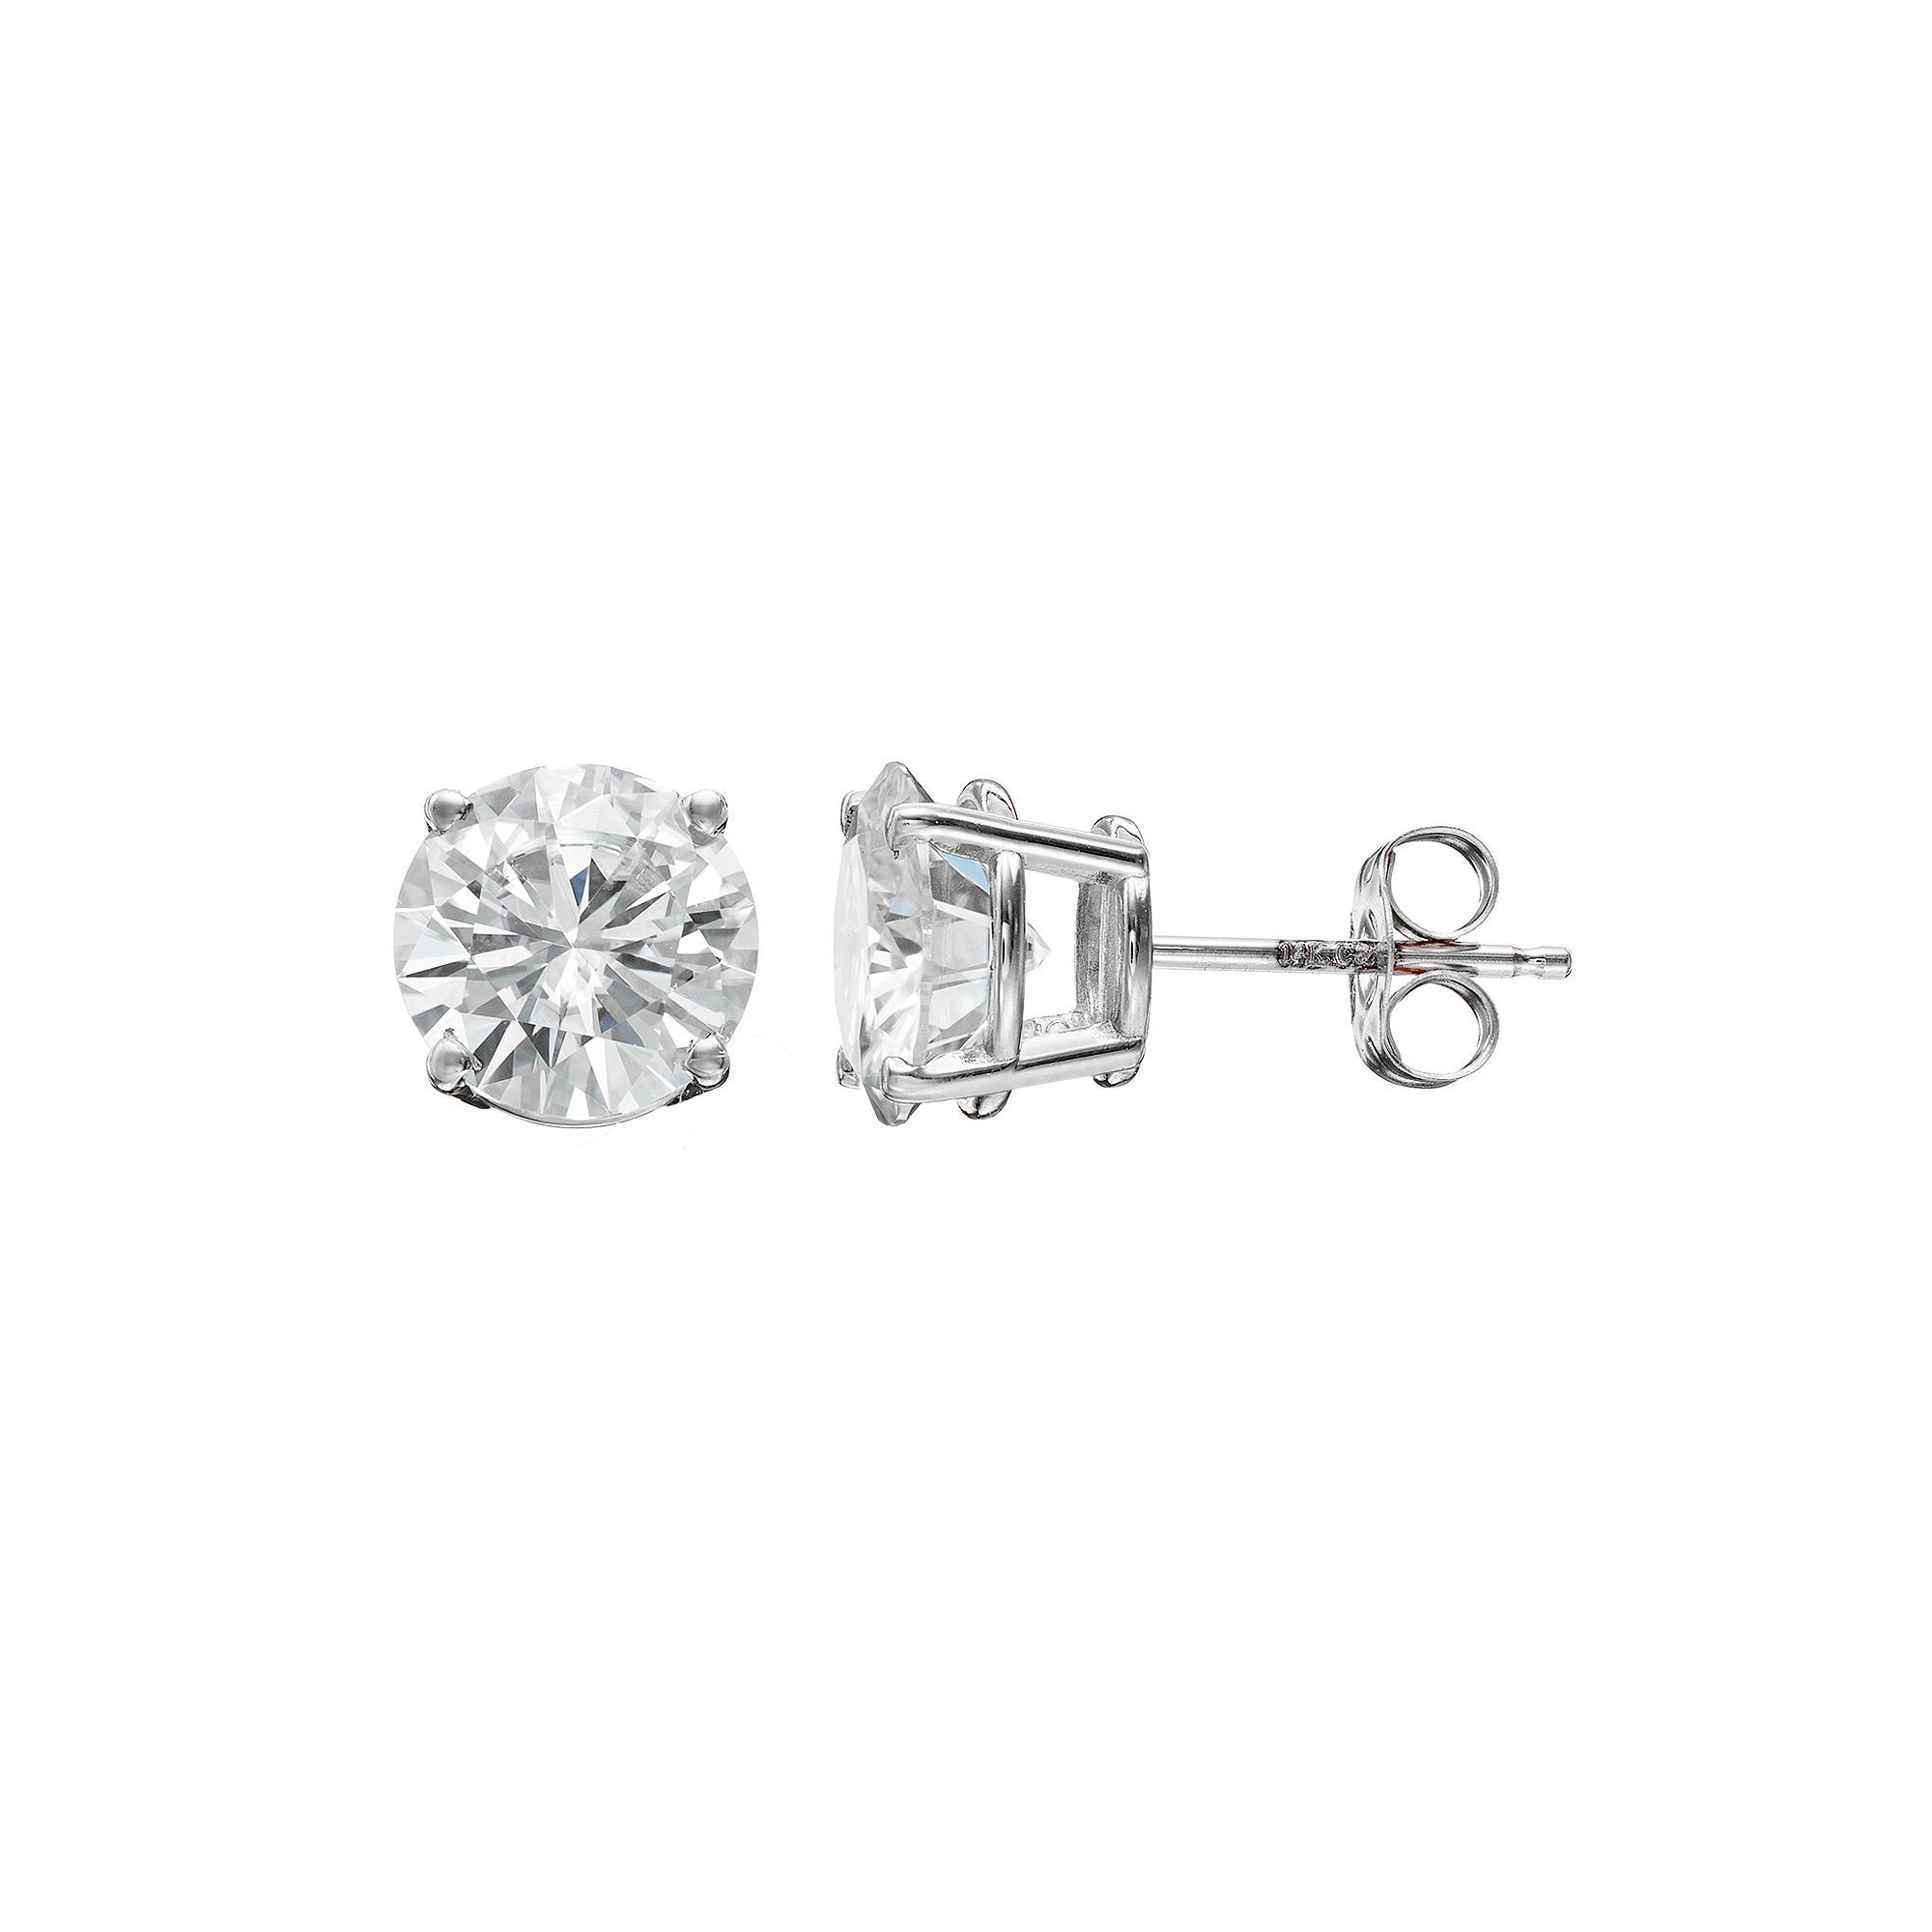 rose my topic oec earrings yay moissanite in are gold